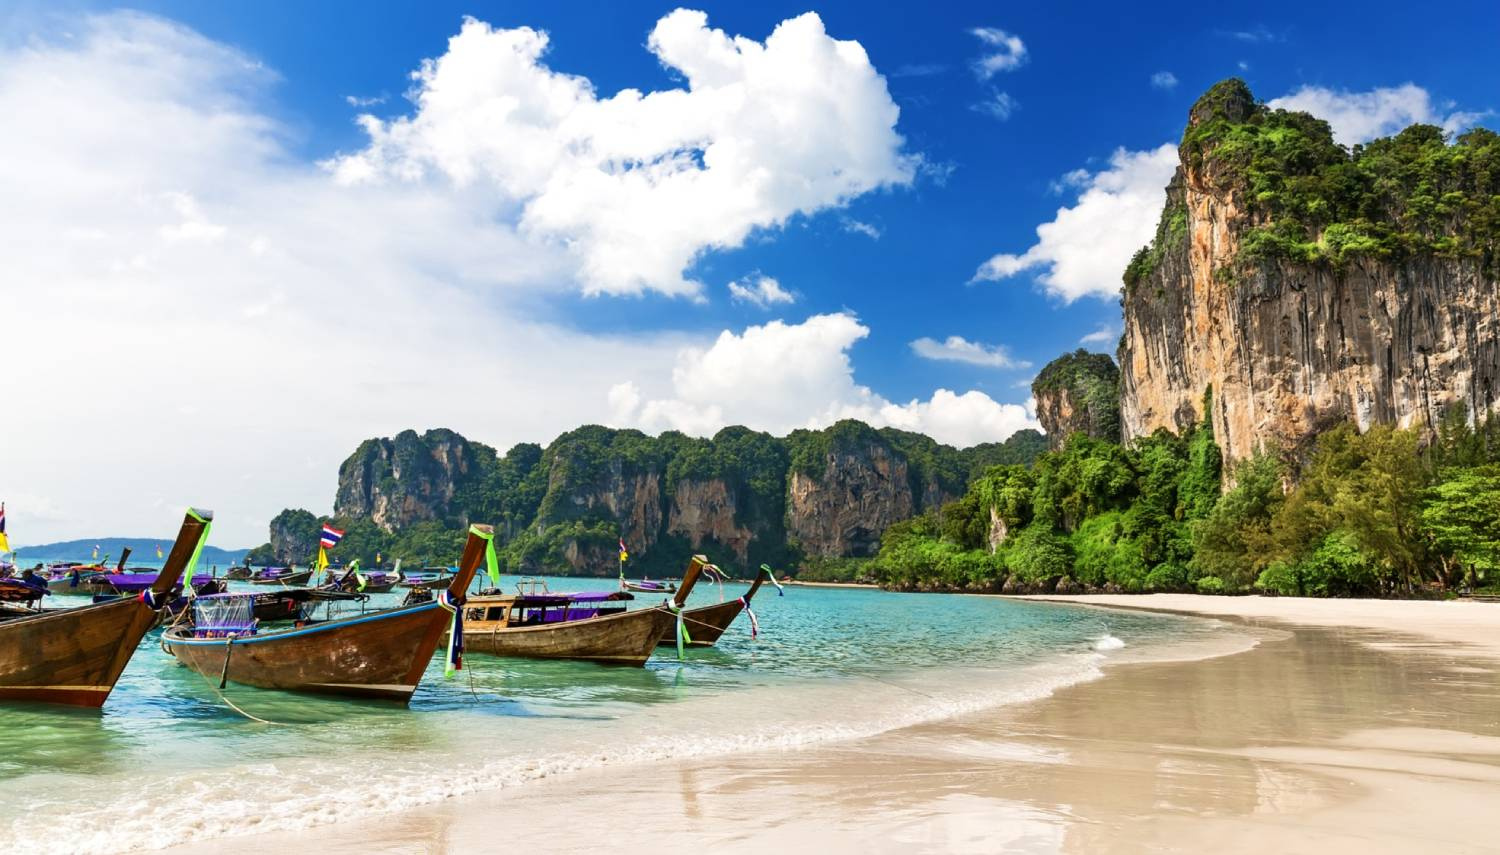 Railay Beach - Things To Do In Thailand